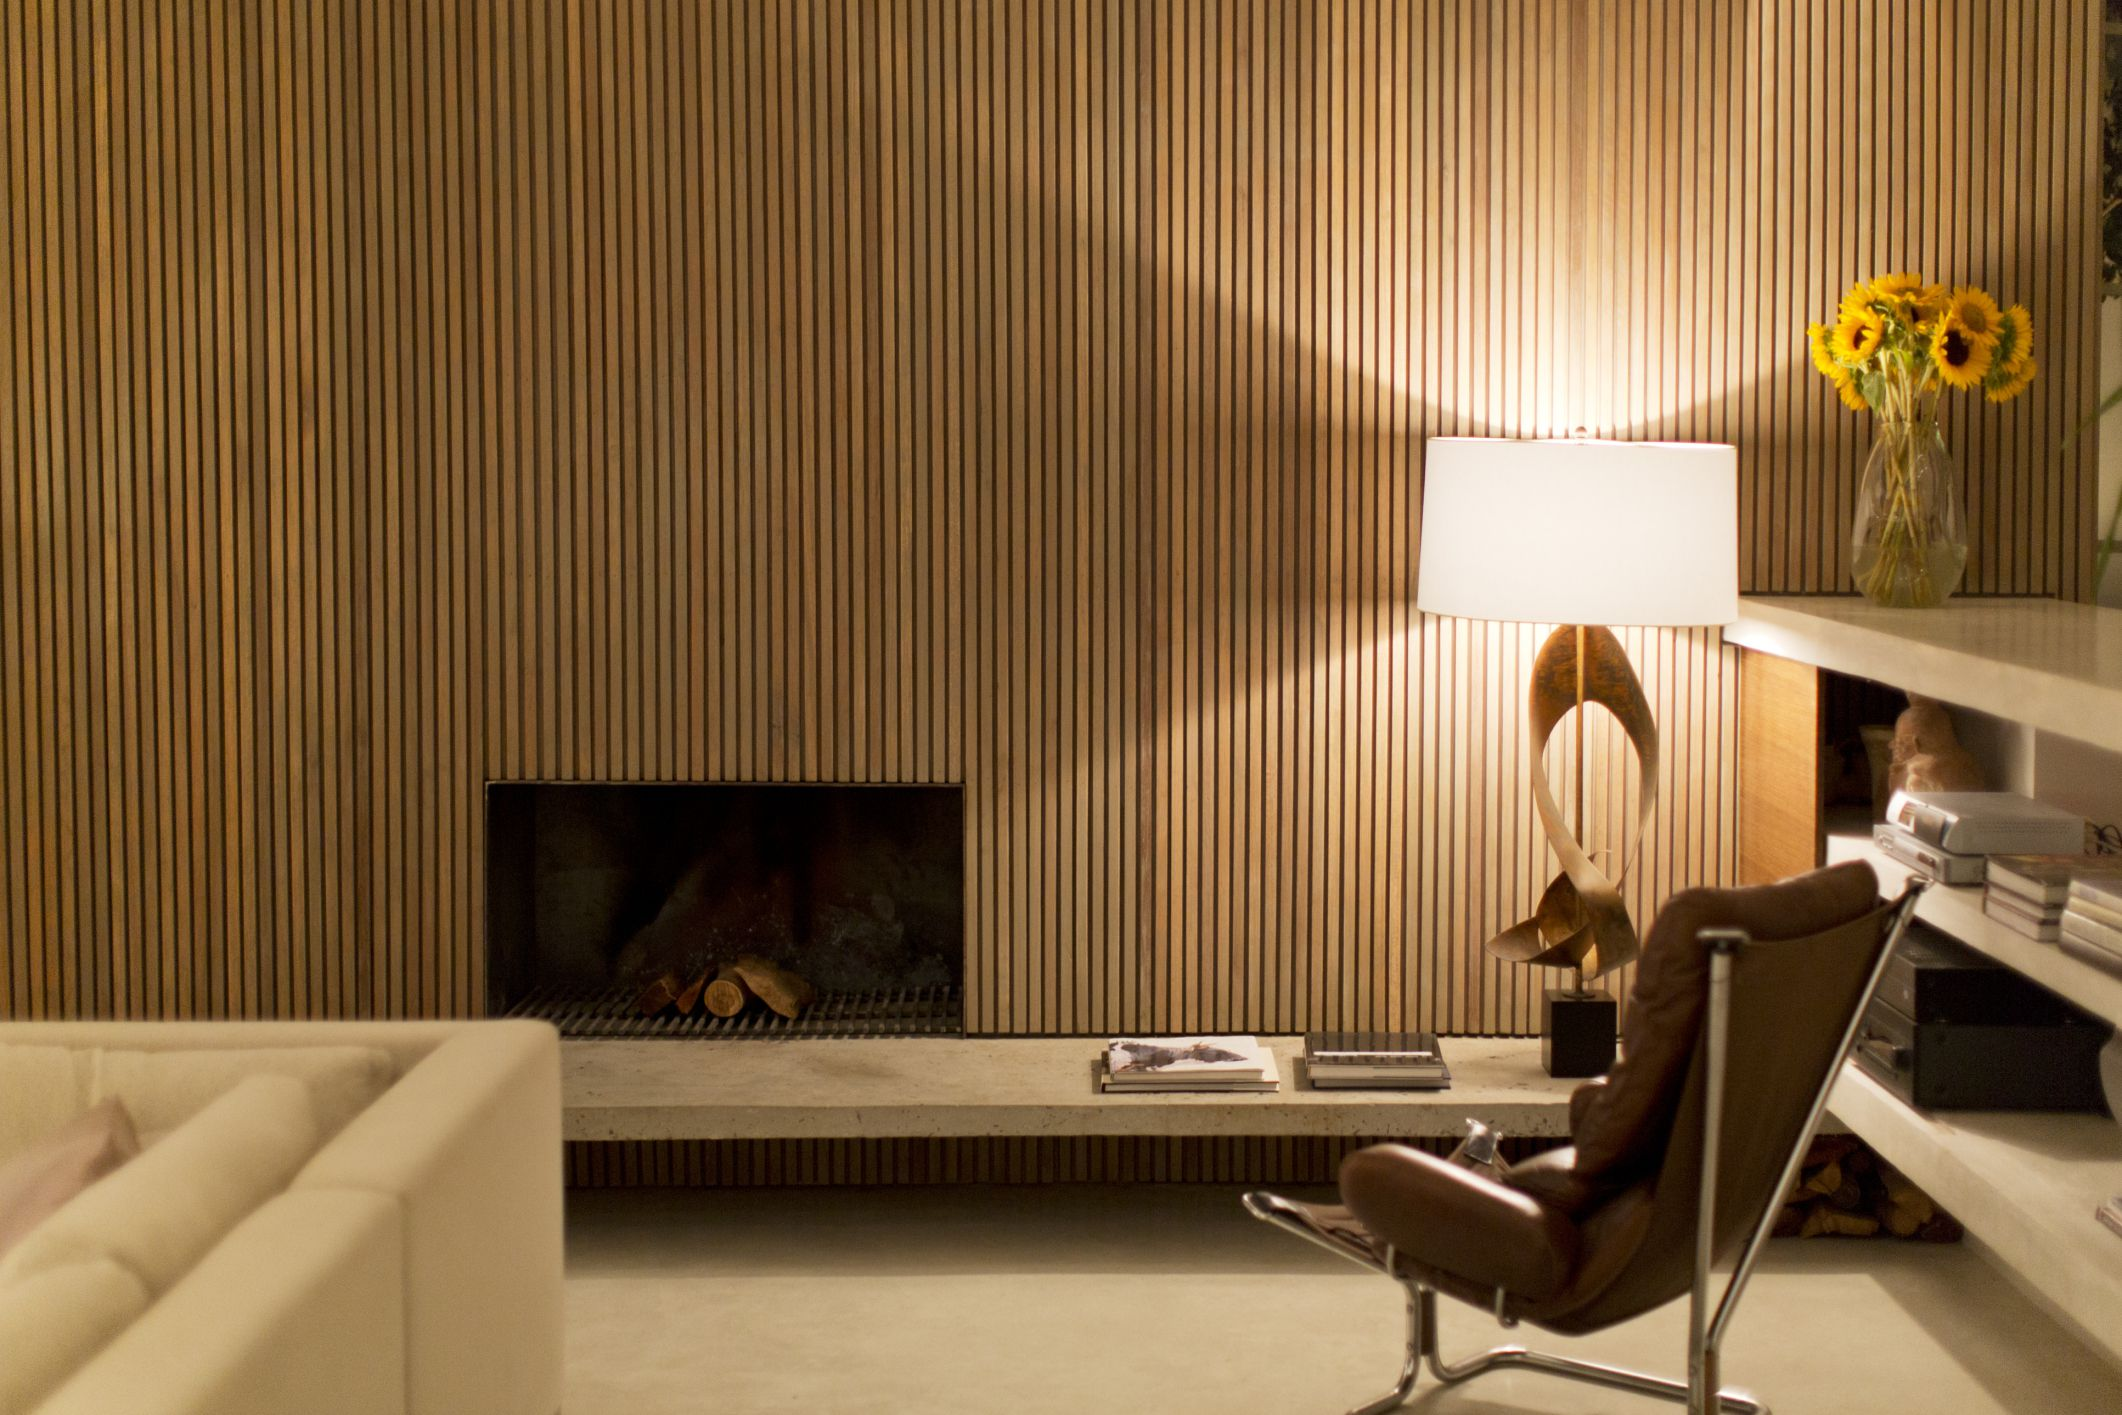 Wood Paneling An Alternative to Drywall and Paint